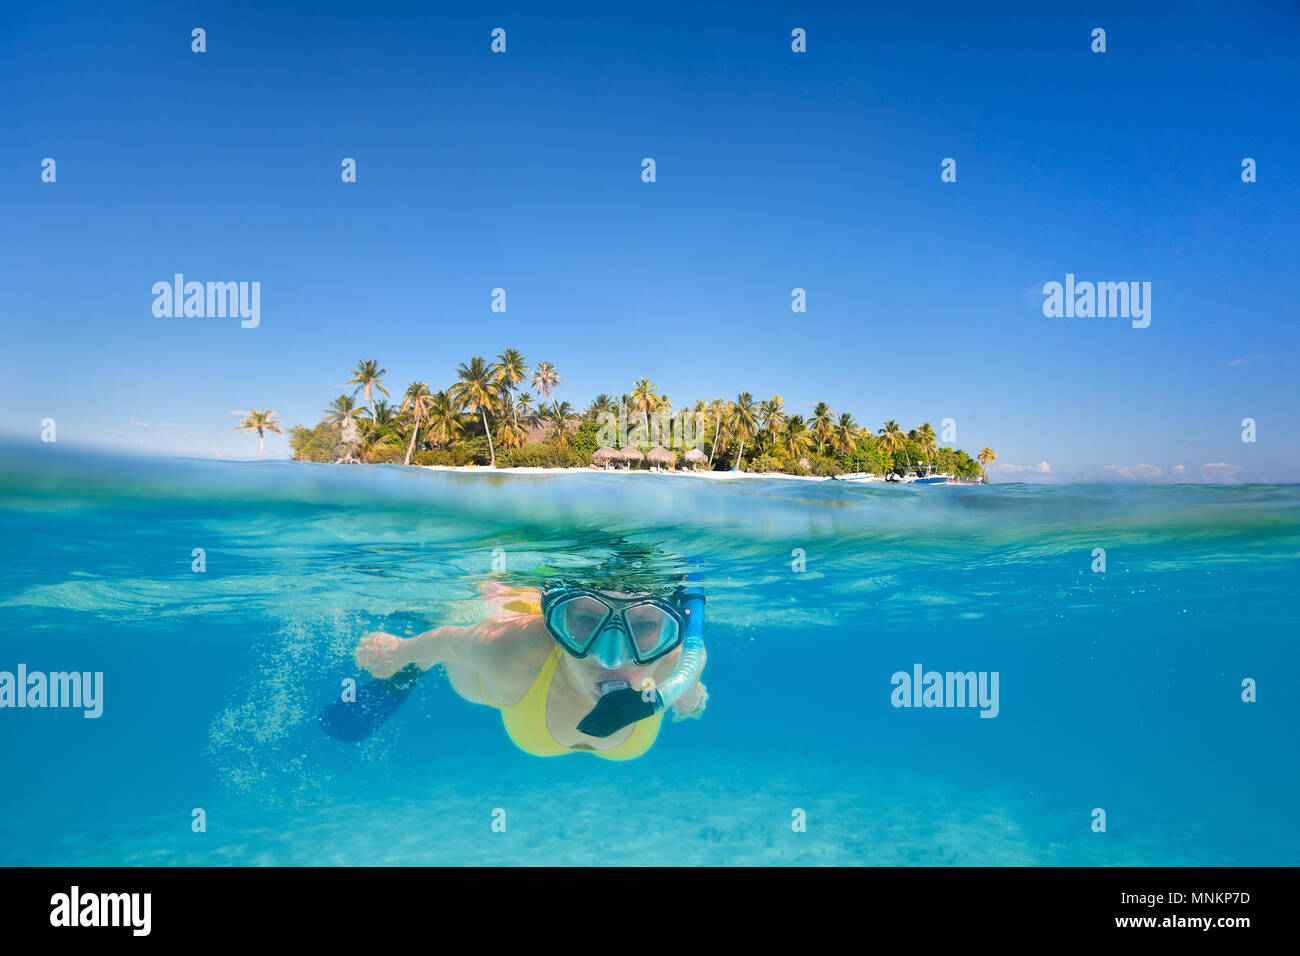 Woman snorkeling in clear tropical waters in front of exotic island - Stock Image